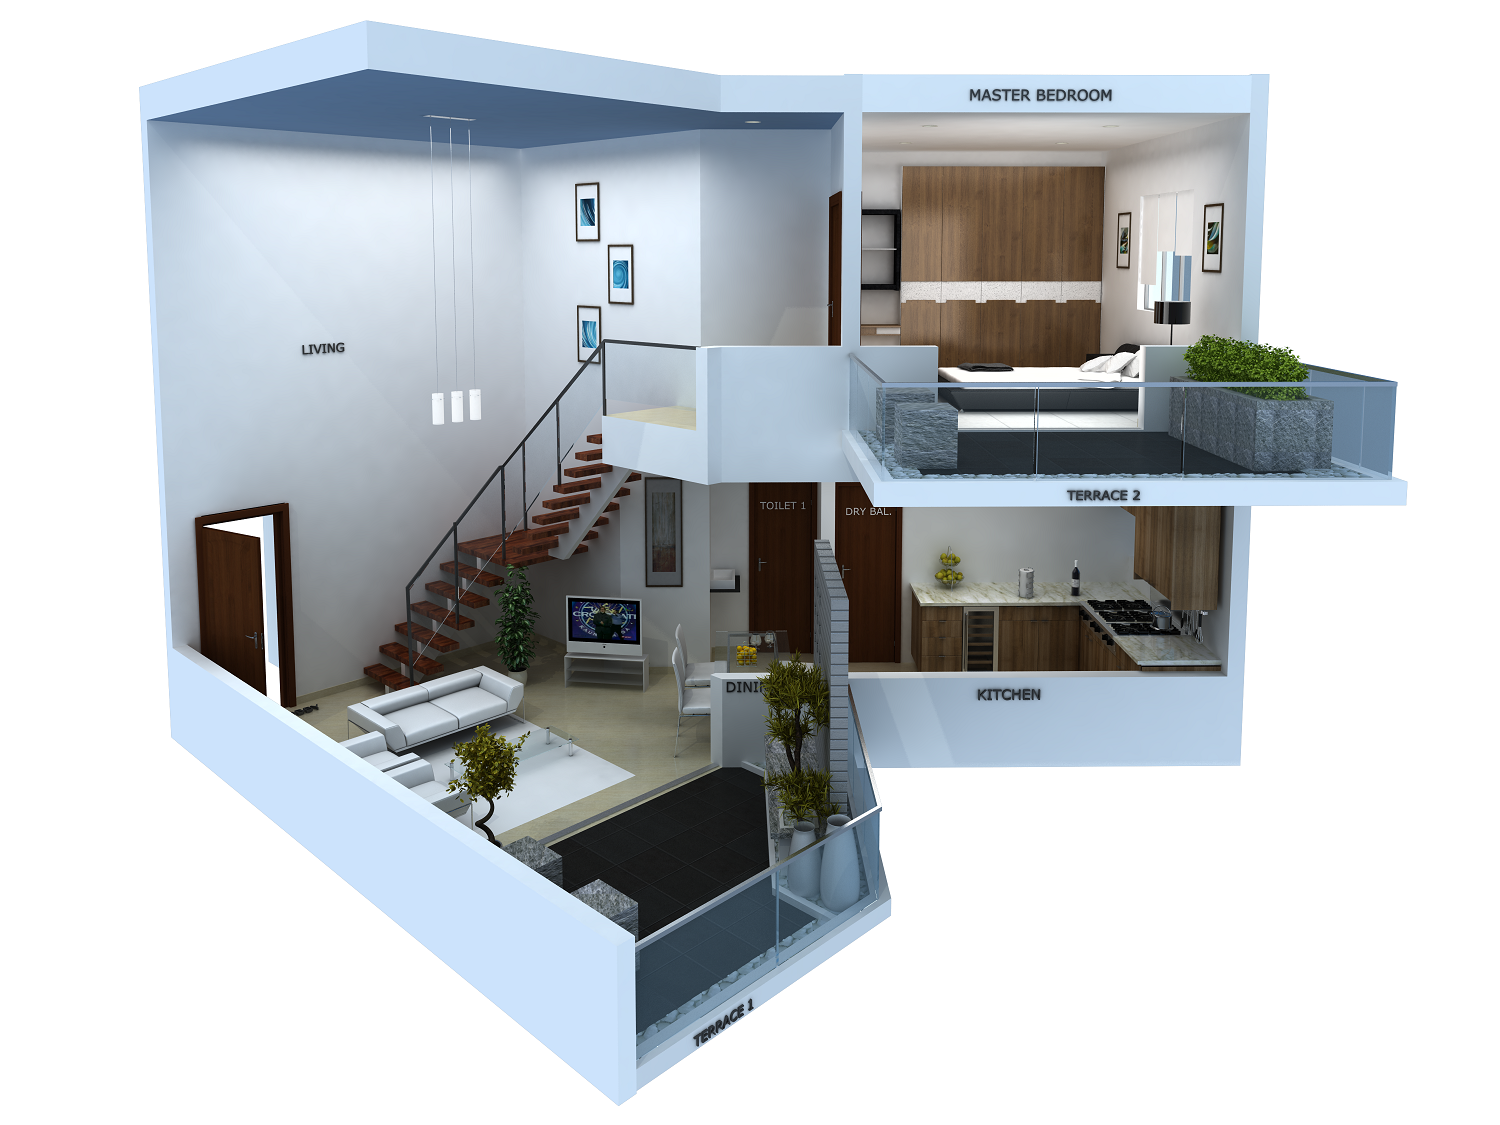 Photo 1 bhk duplex house plans images 3d duplex house for 1 bhk room interior design ideas